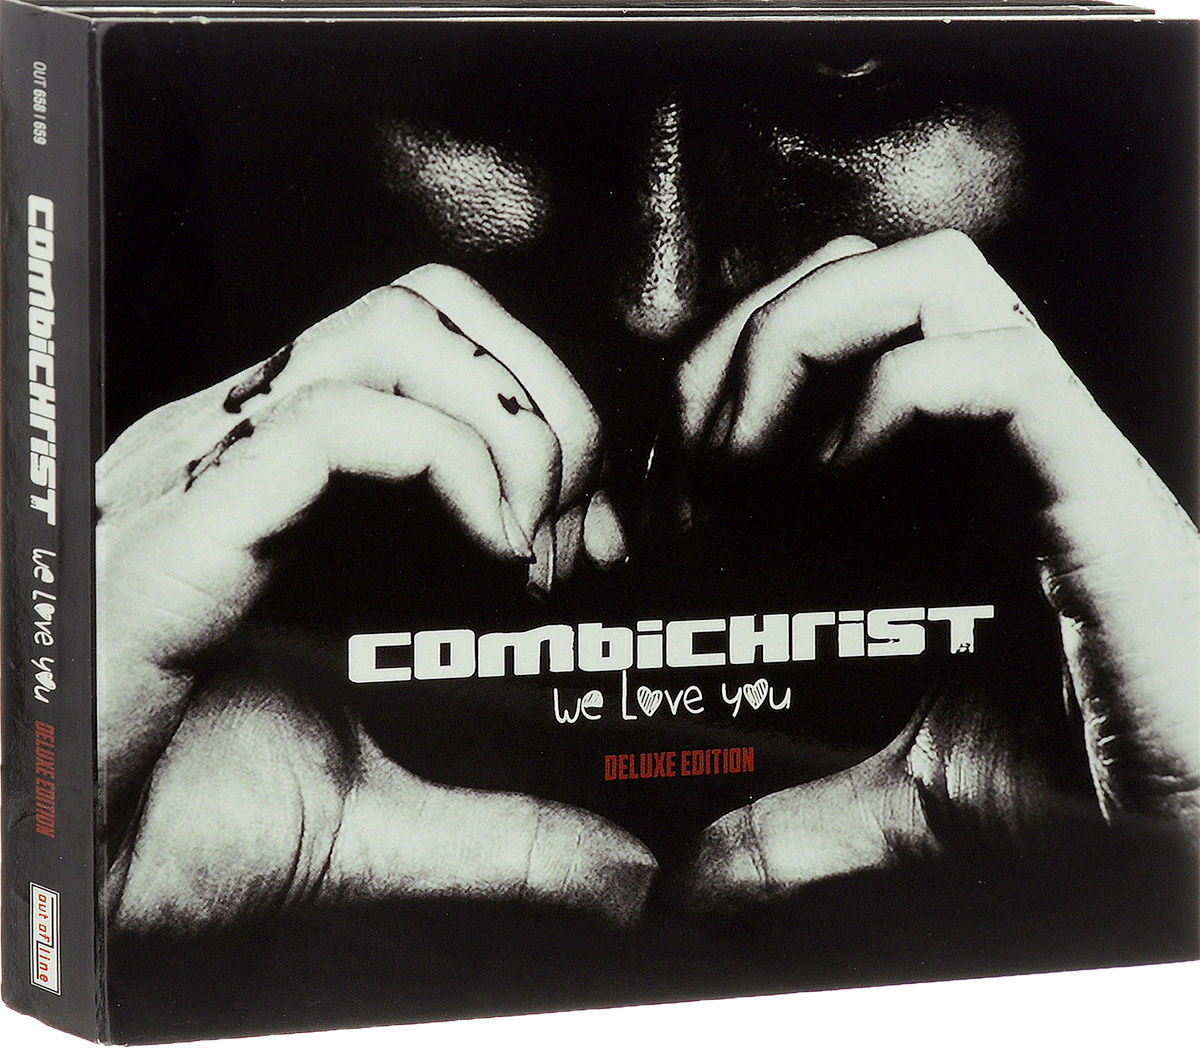 Combichrist Combichrist. We Love You (2 CD) 639521 001 g6 g6 1000 connect with printer motherboard full test lap connect board